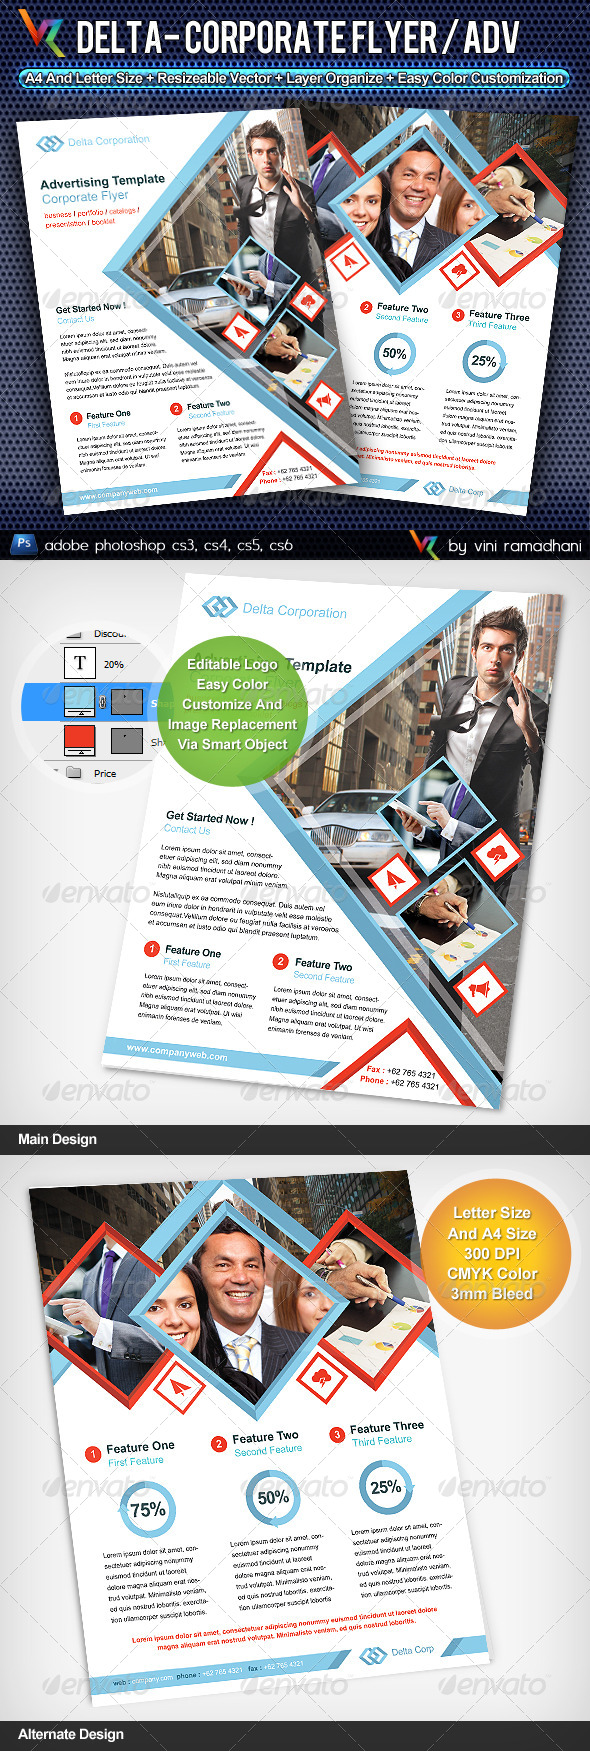 Delta Corporate Flyer Or Advertising - Corporate Flyers